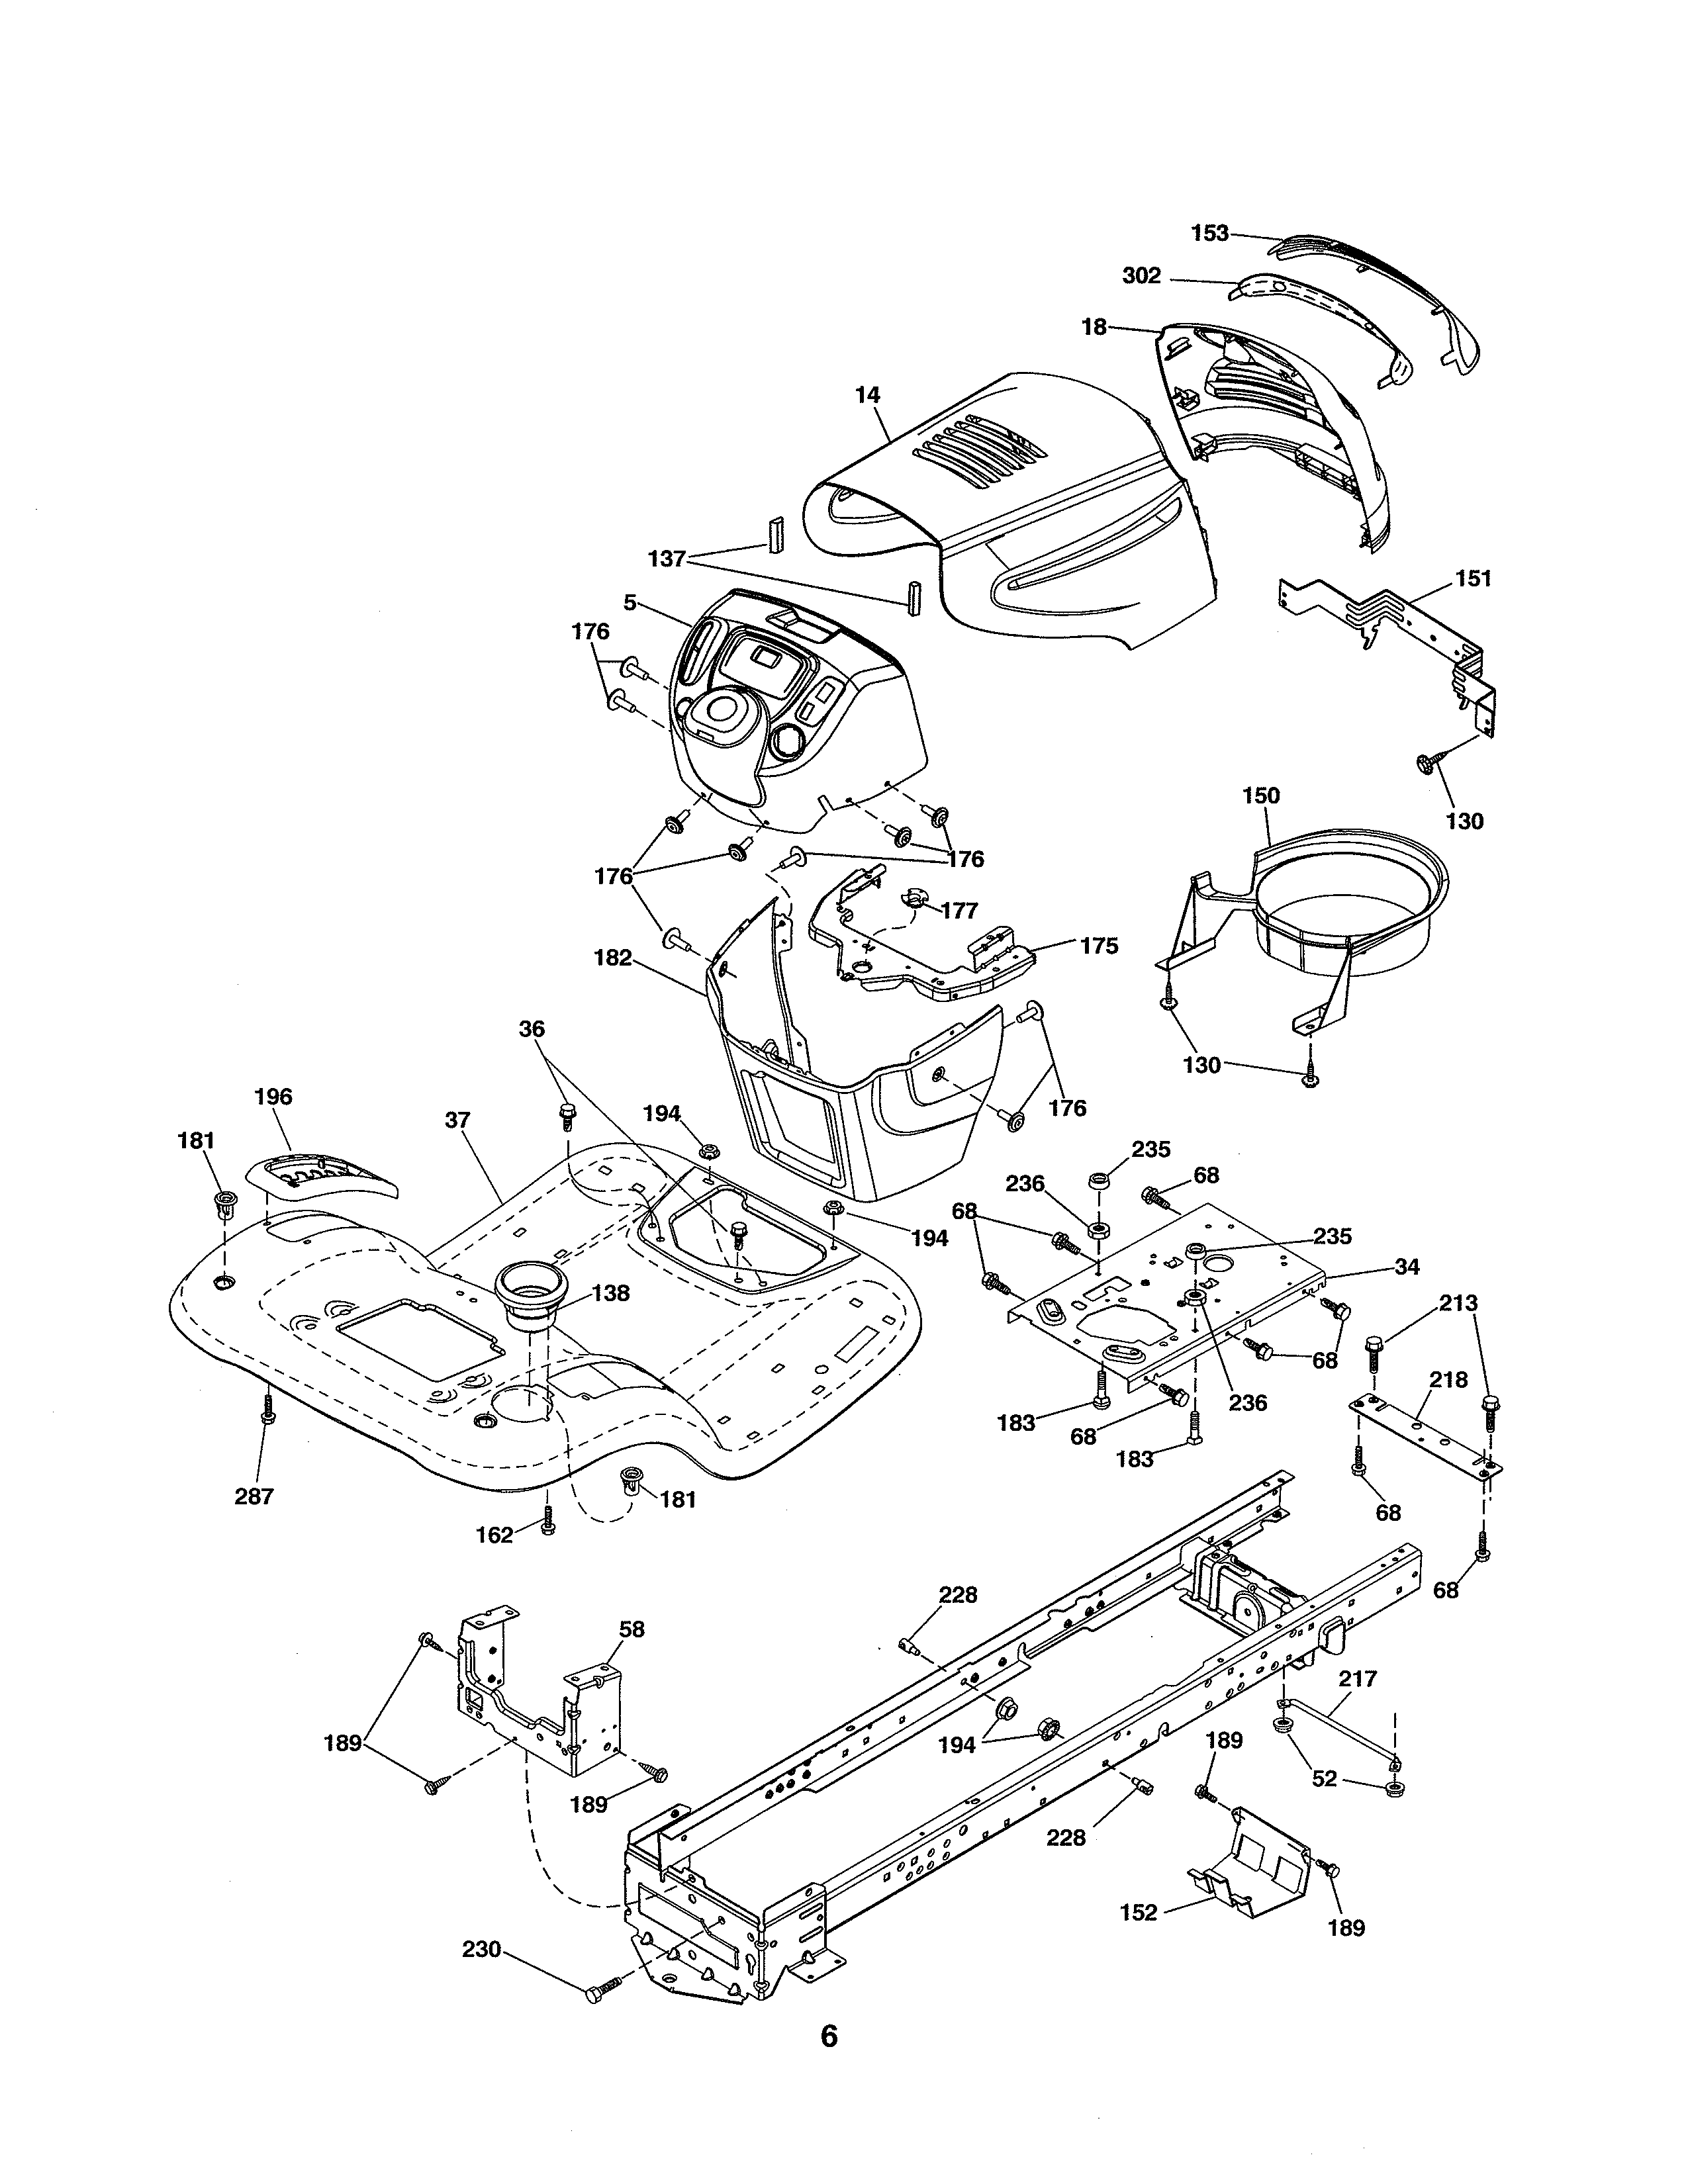 CHASSIS Diagram & Parts List for Model 93603800 Ariens-Parts Riding-Mower-Tractor-Parts